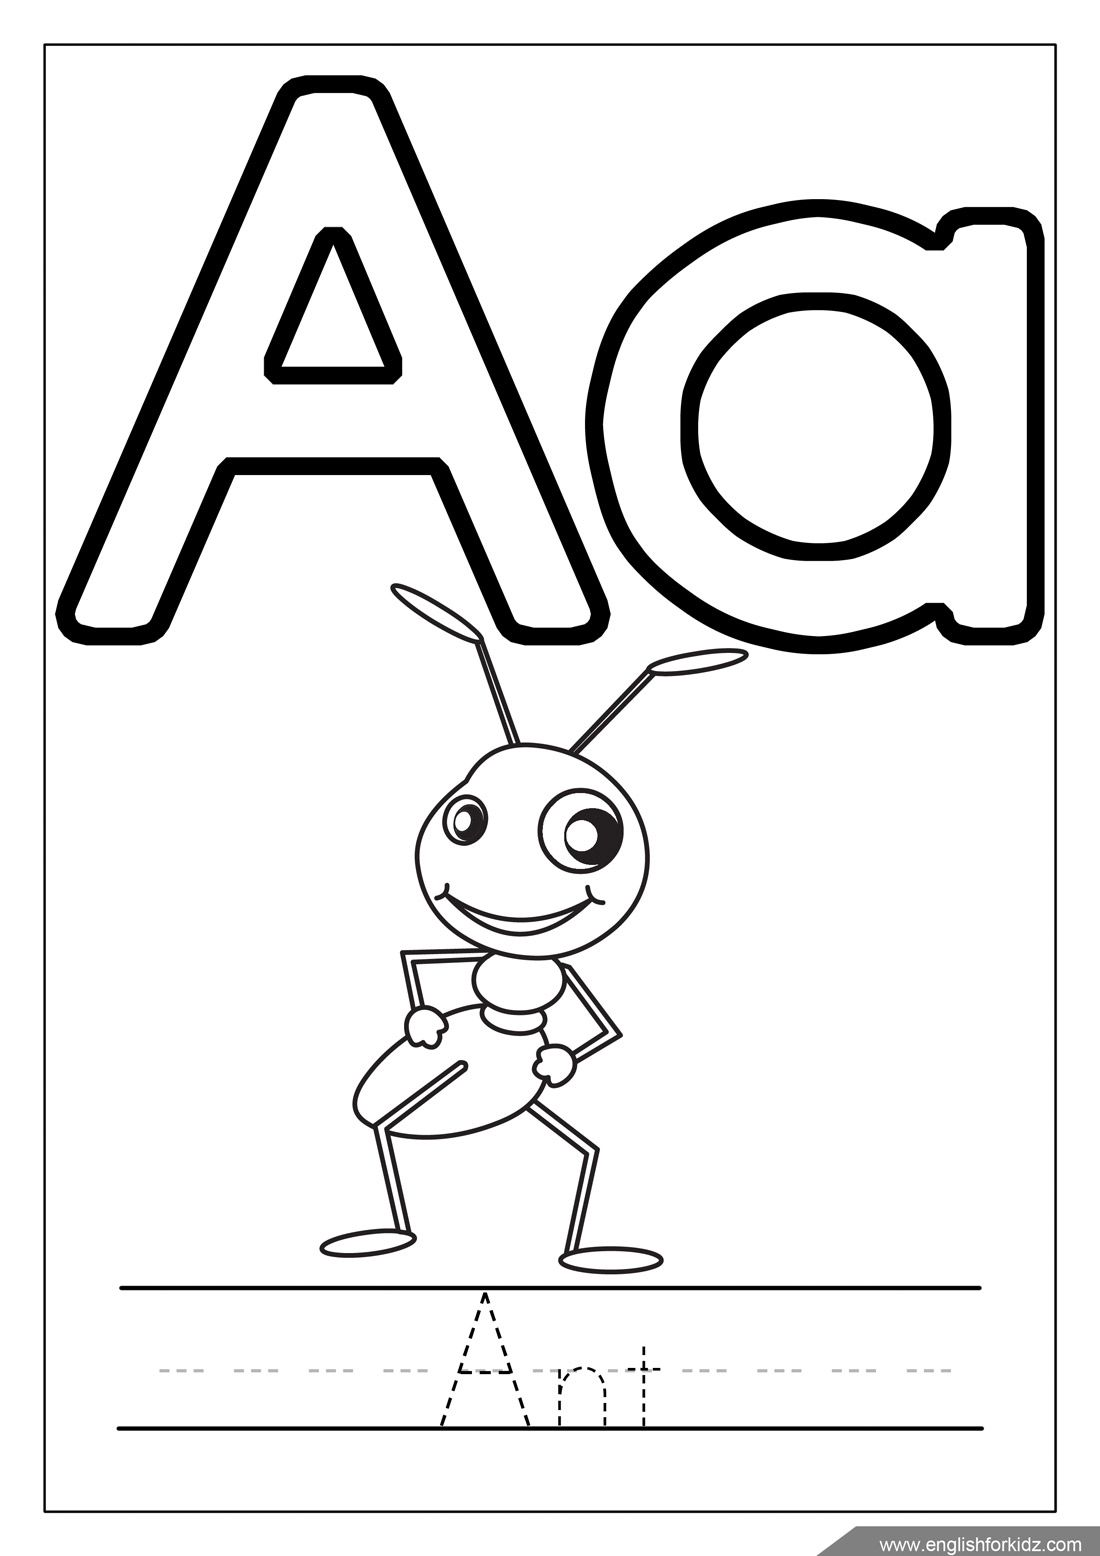 Alphabet Coloring Page Letter A Coloring A Is For Ant